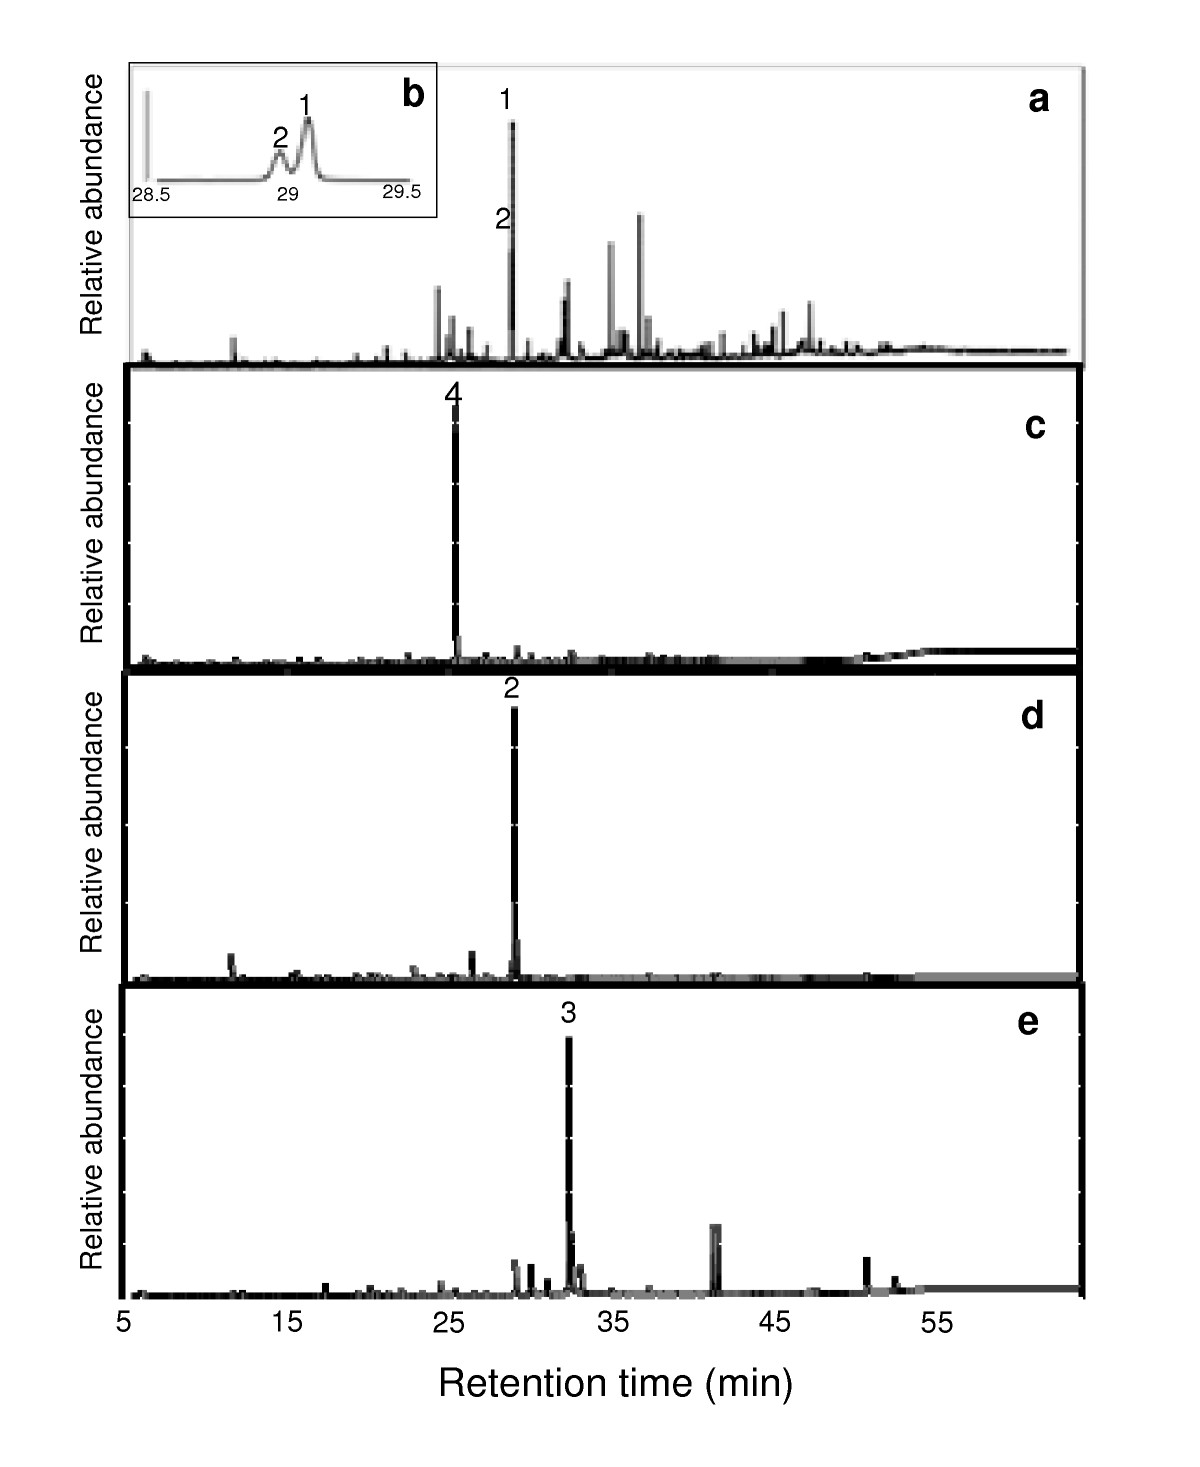 http://static-content.springer.com/image/art%3A10.1186%2F1743-422X-6-101/MediaObjects/12985_2009_Article_615_Fig4_HTML.jpg